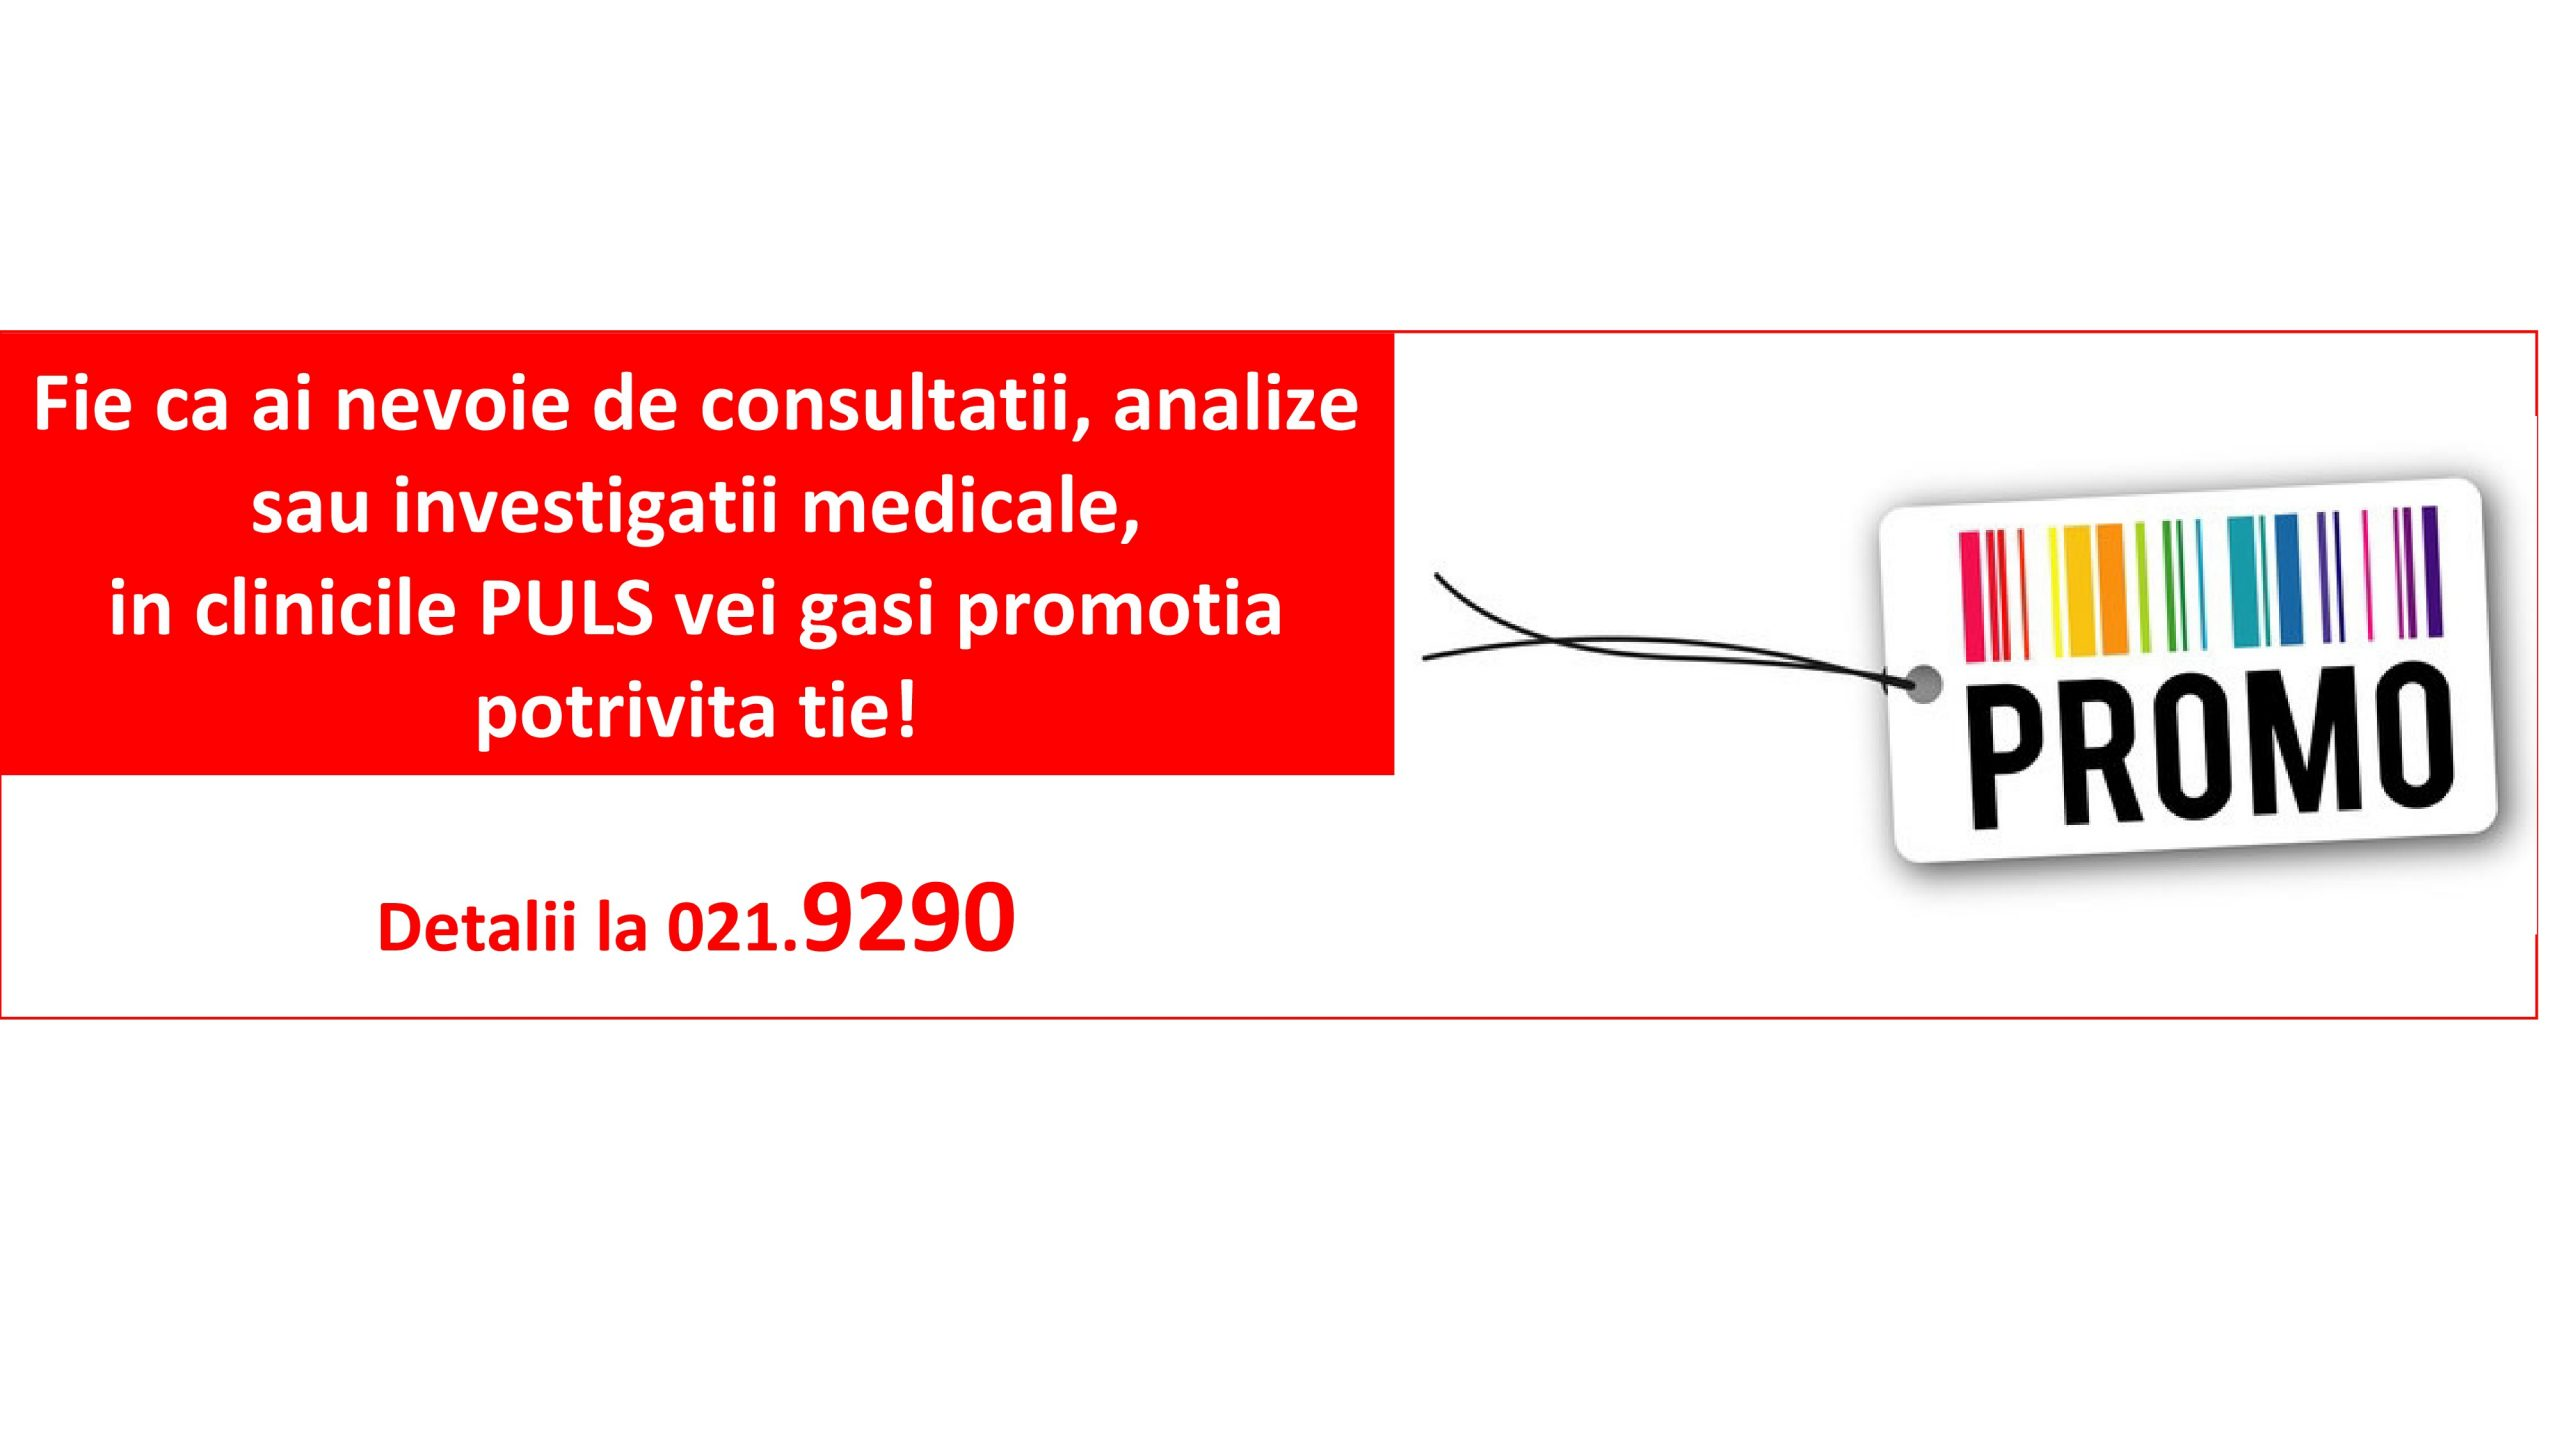 Promo-PULS-scaled